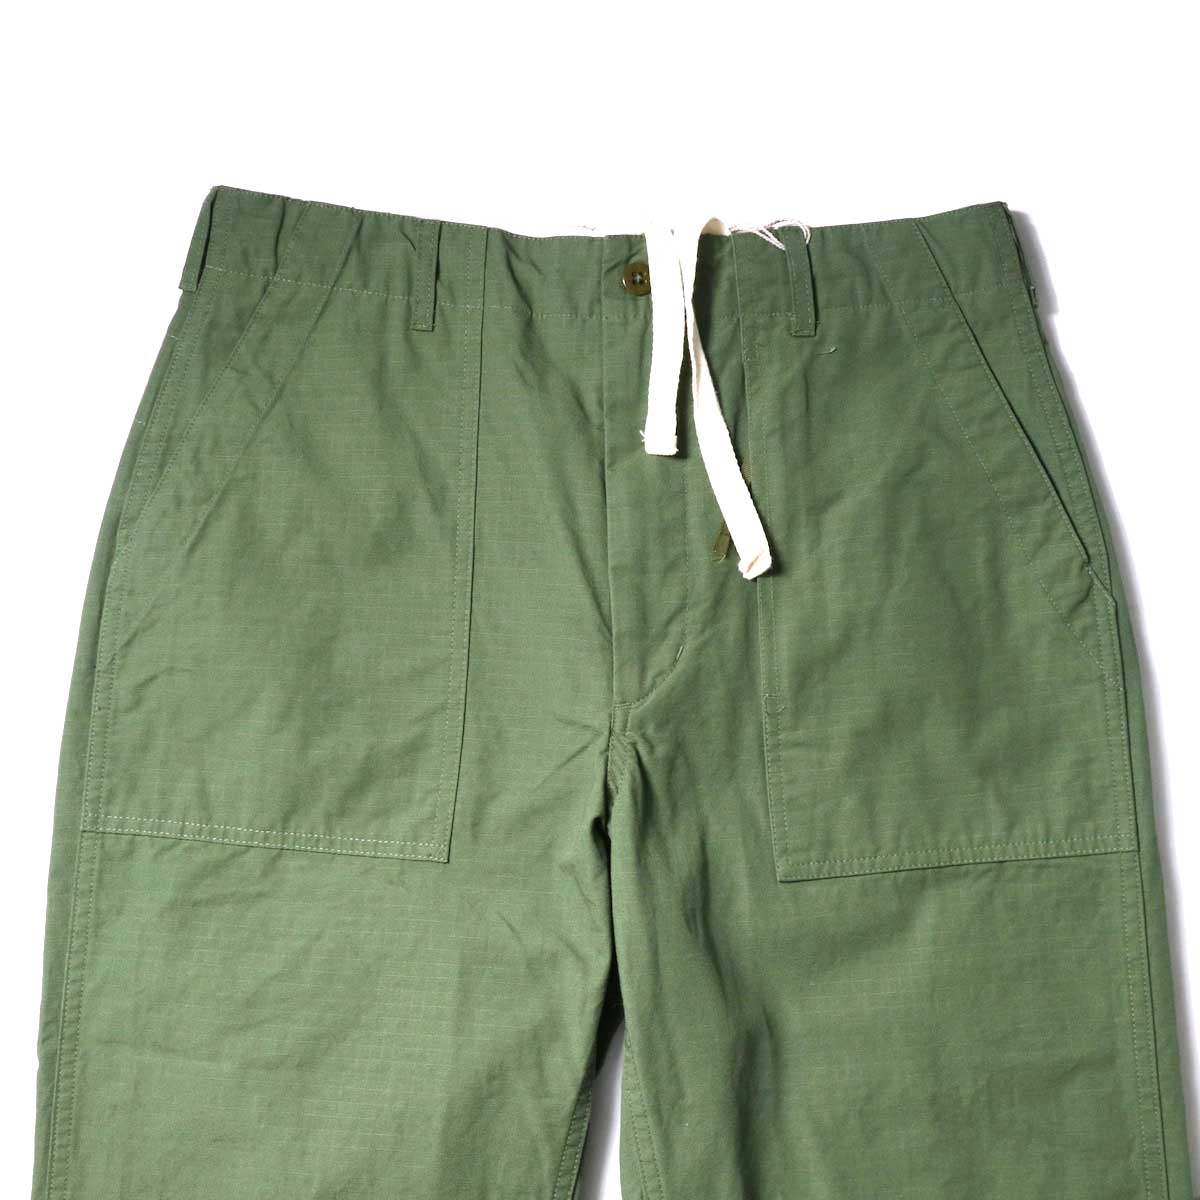 Engineered Garments / Fatigue Pant - Cotton Ripstop (Olive)ウエスト